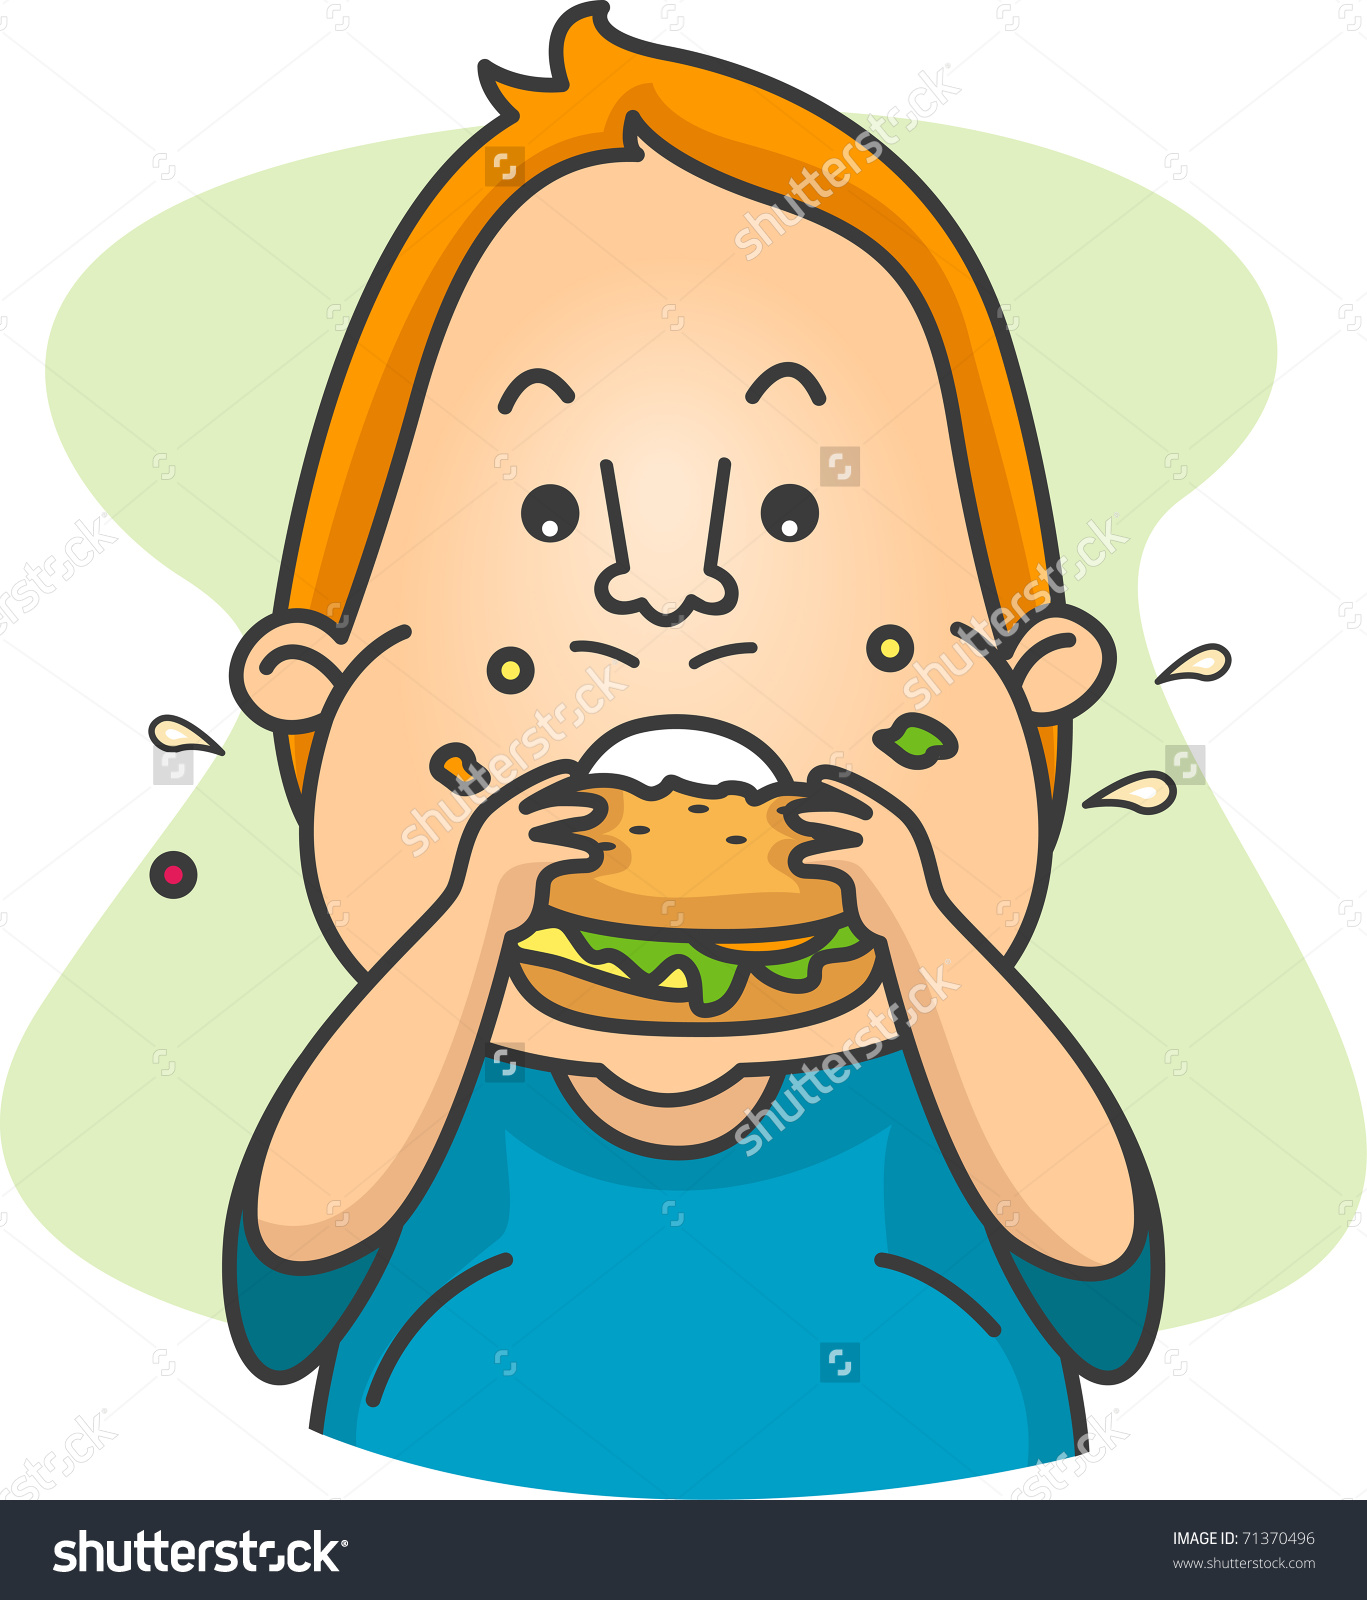 Chew mouth closed clipart.